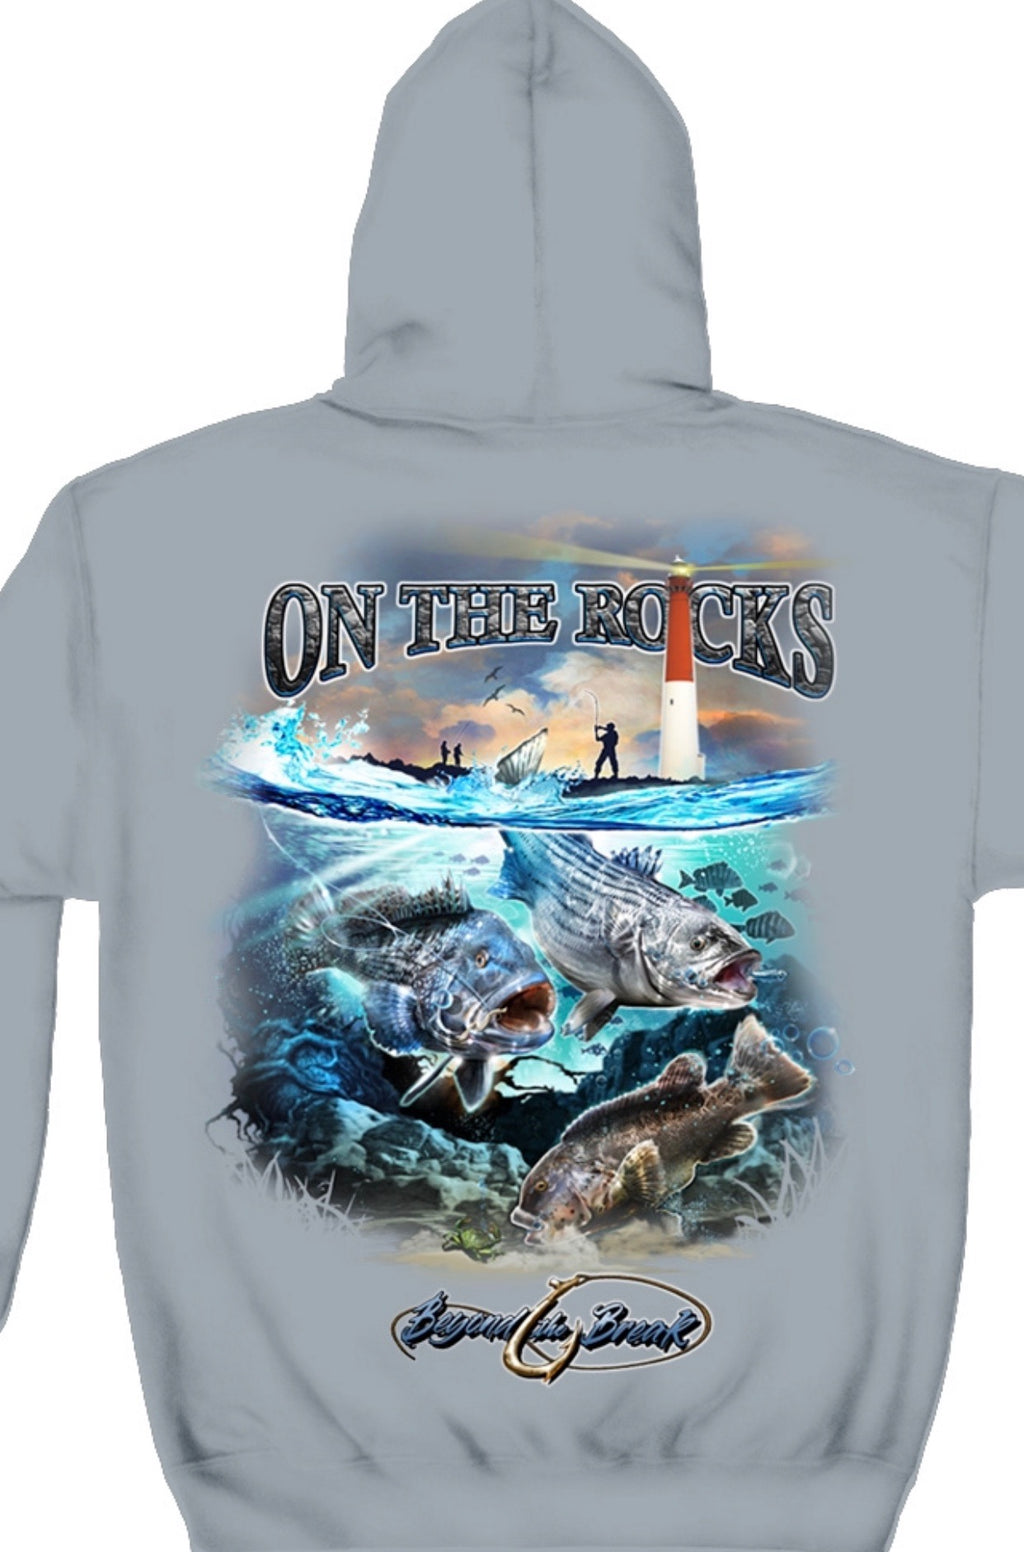 On The Rocks Beyond The Break Sweatshirt Striped Bass - The Wall Kids, Inc.